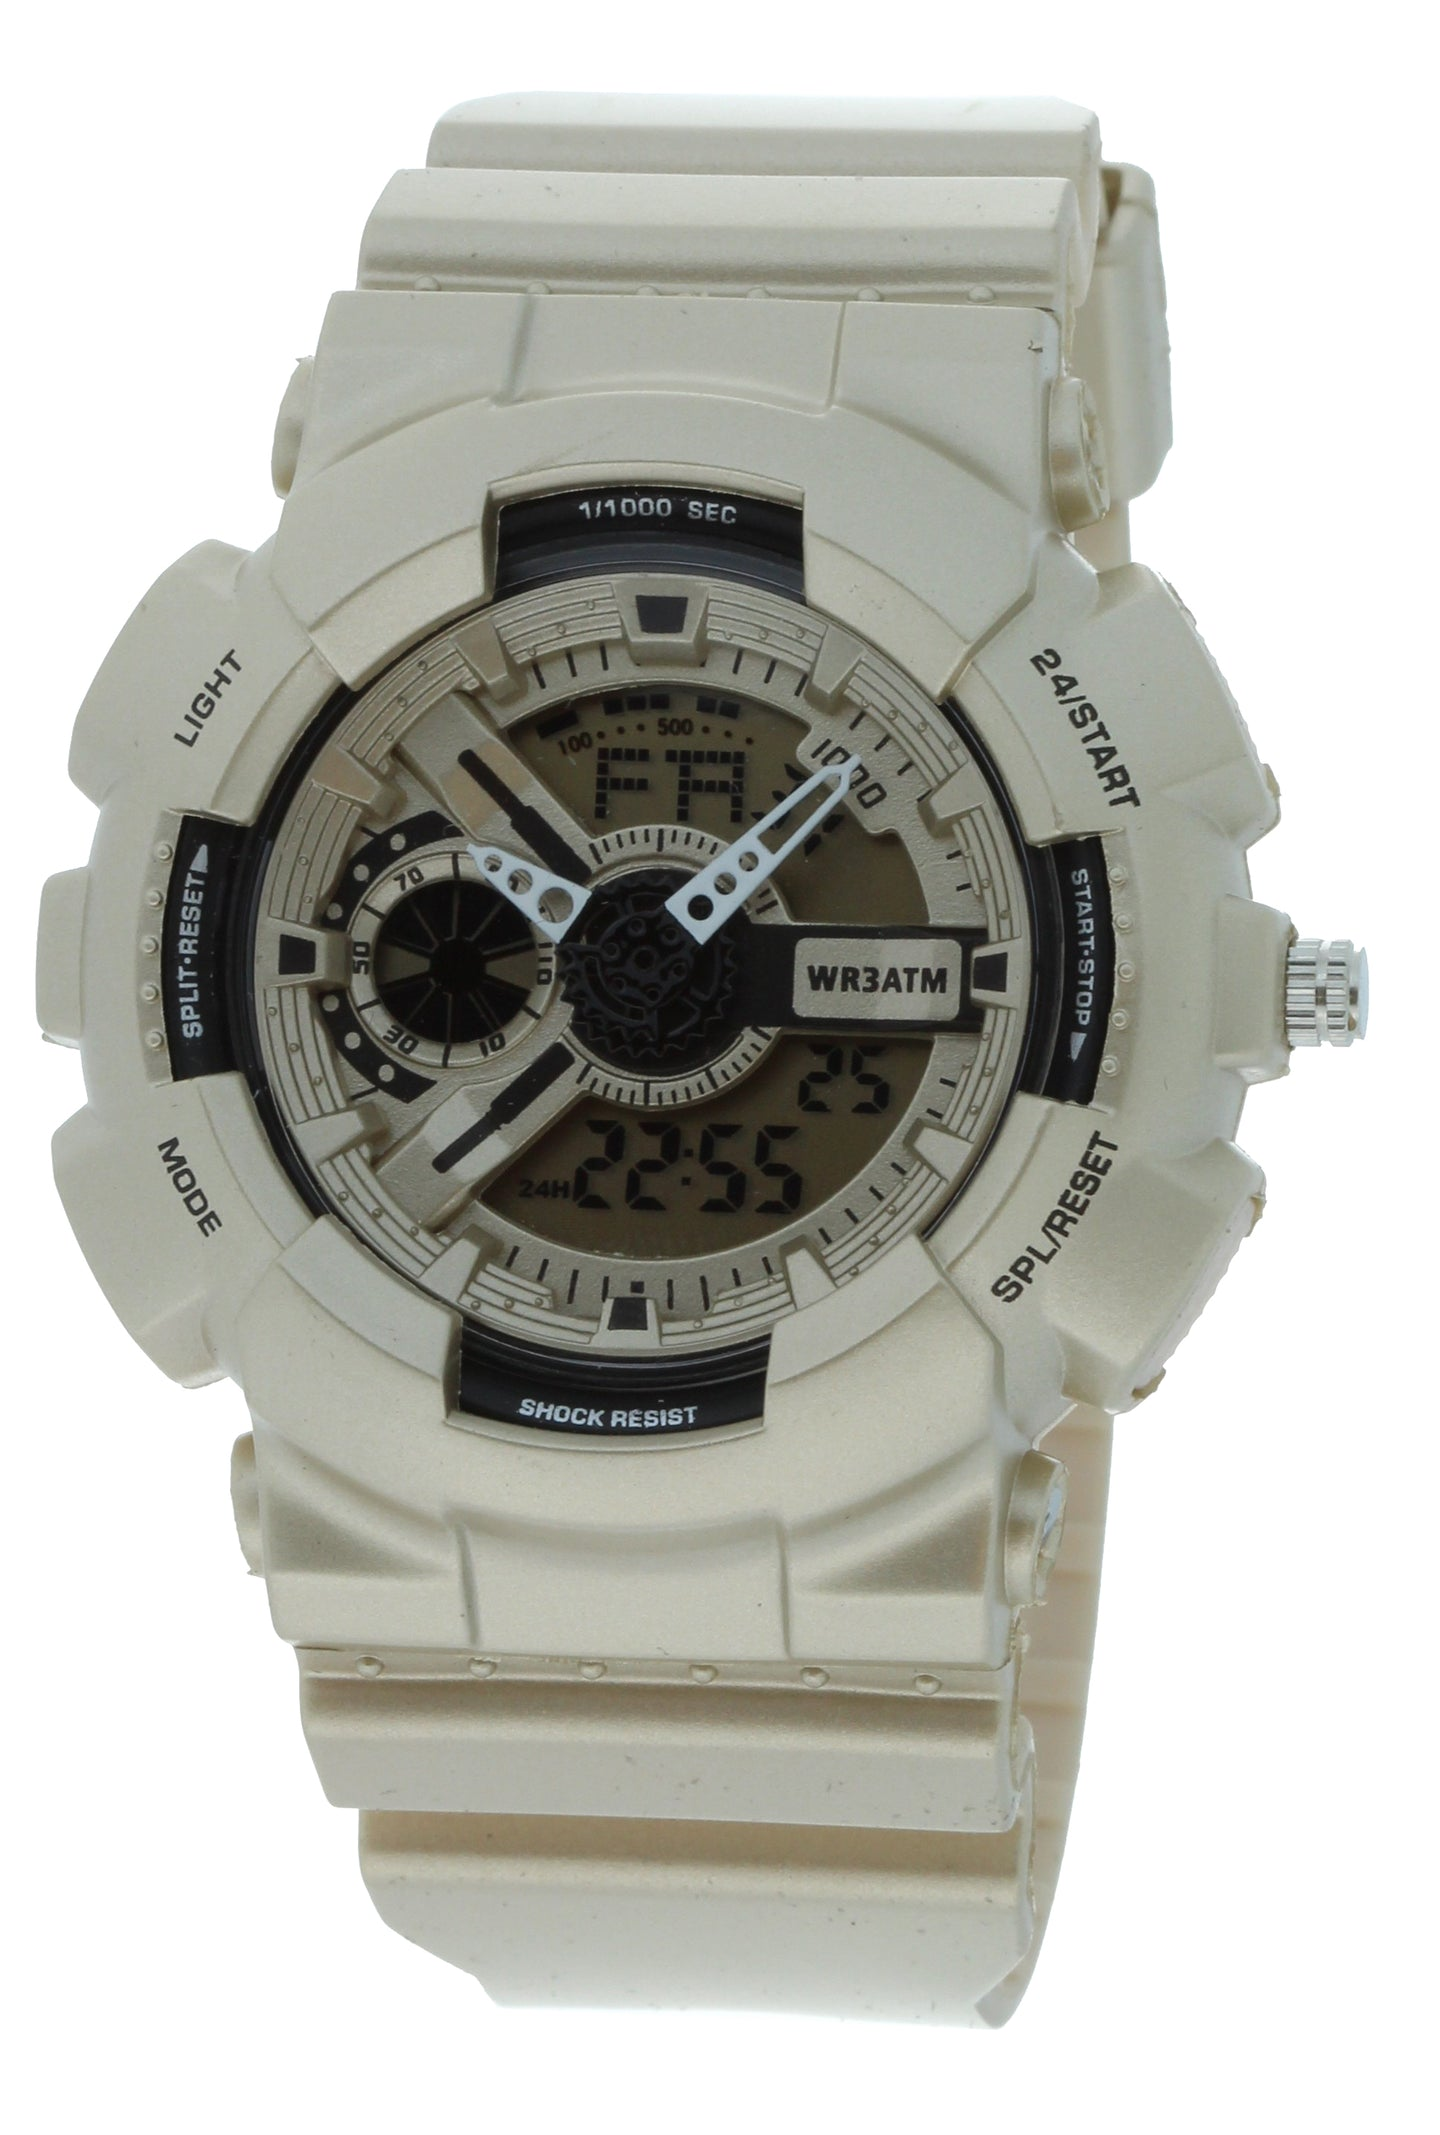 G-Shock Style X-Large Combination Watch--Military Matt Silver Color - BDM4010